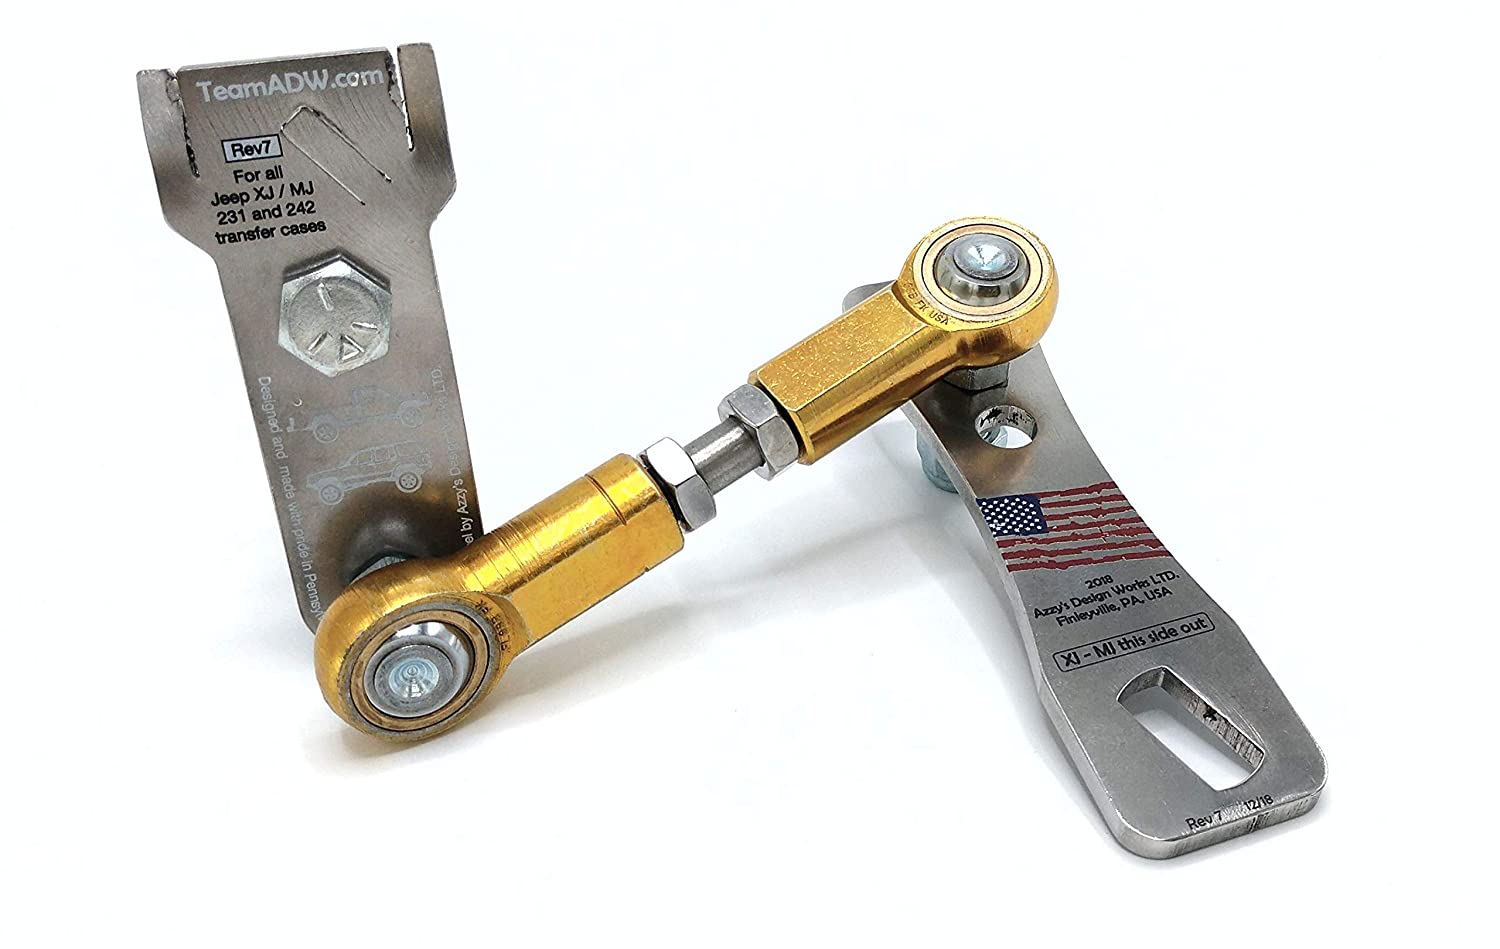 d23b0a2fa8b Amazon.com: New Jeep Cherokee transfer case linkage kit for XJ/MJ Comanche  - New easy install version - … (Stainless Steel): Automotive